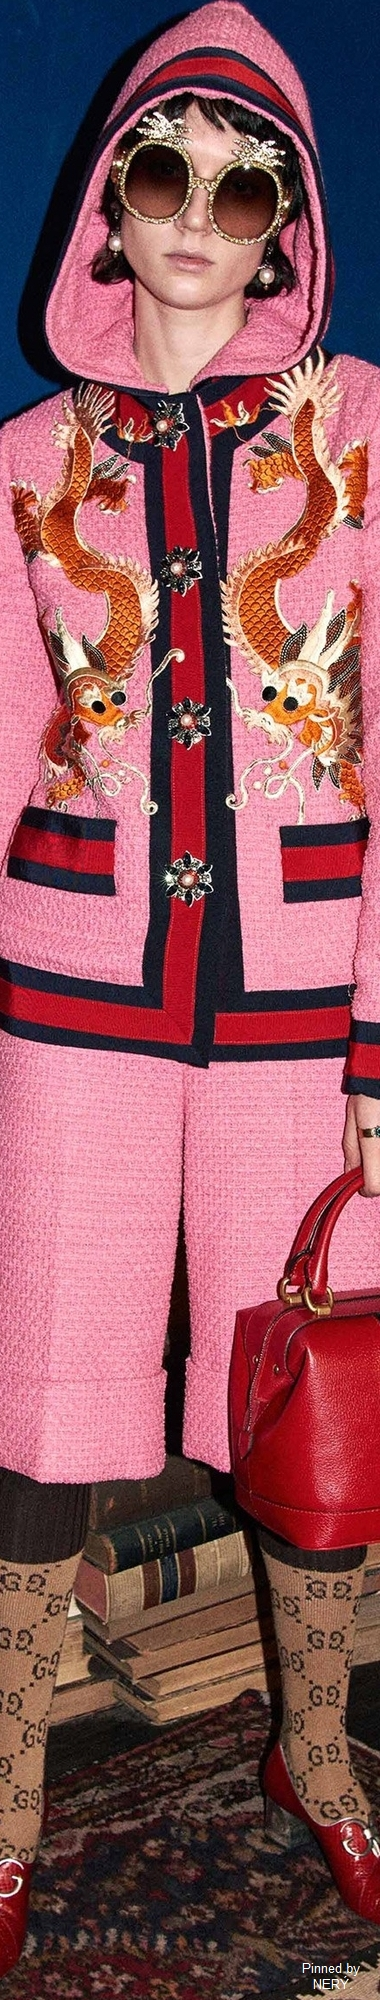 Today's design inspiration: Gucci High Couture. More at Luxxu Blog